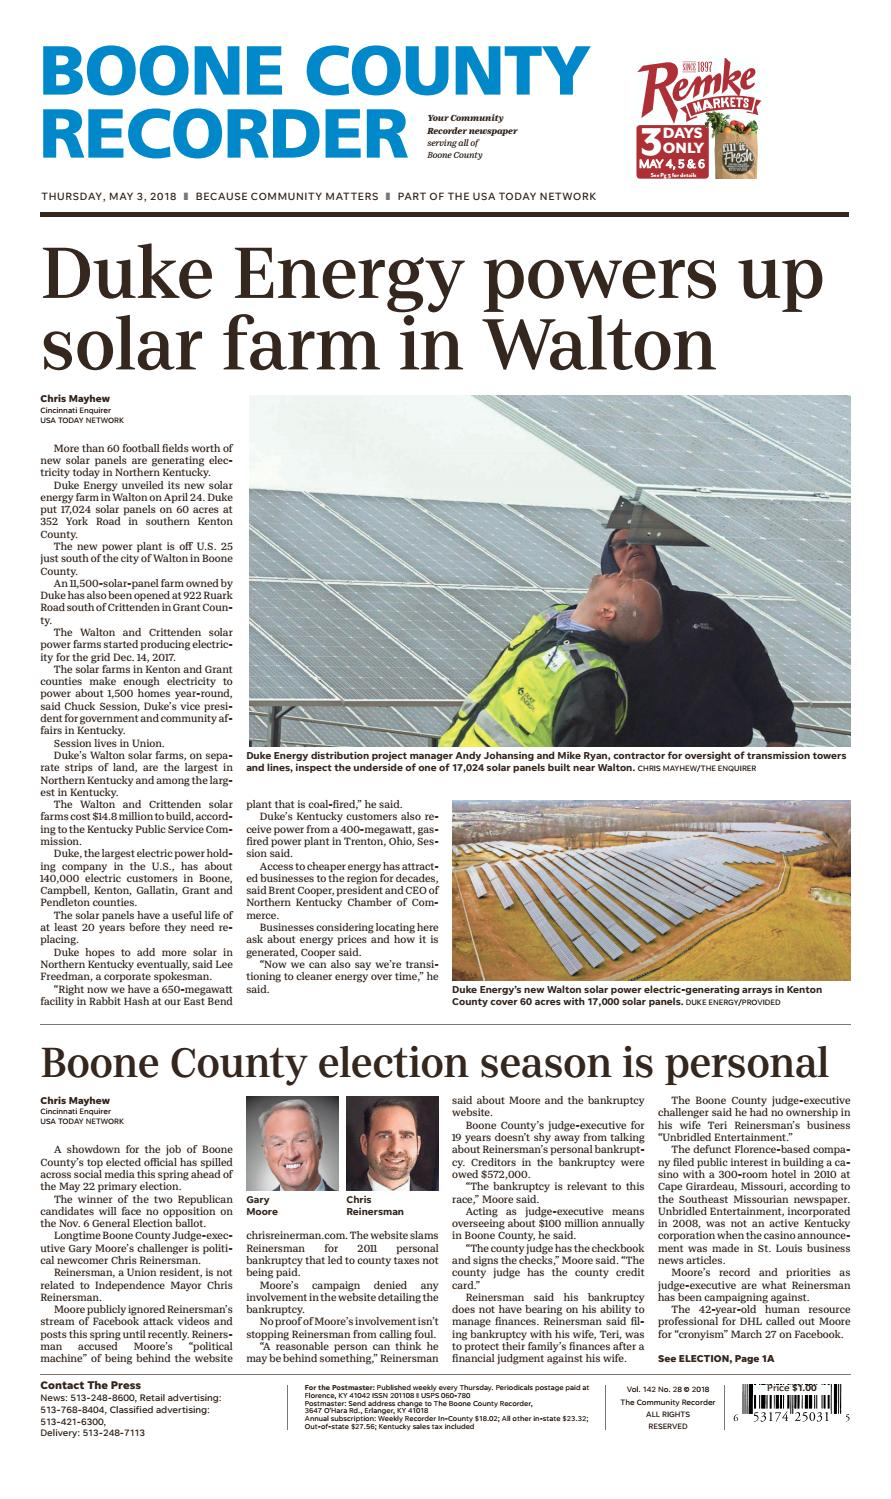 Boone county recorder 050318 by Enquirer Media - issuu